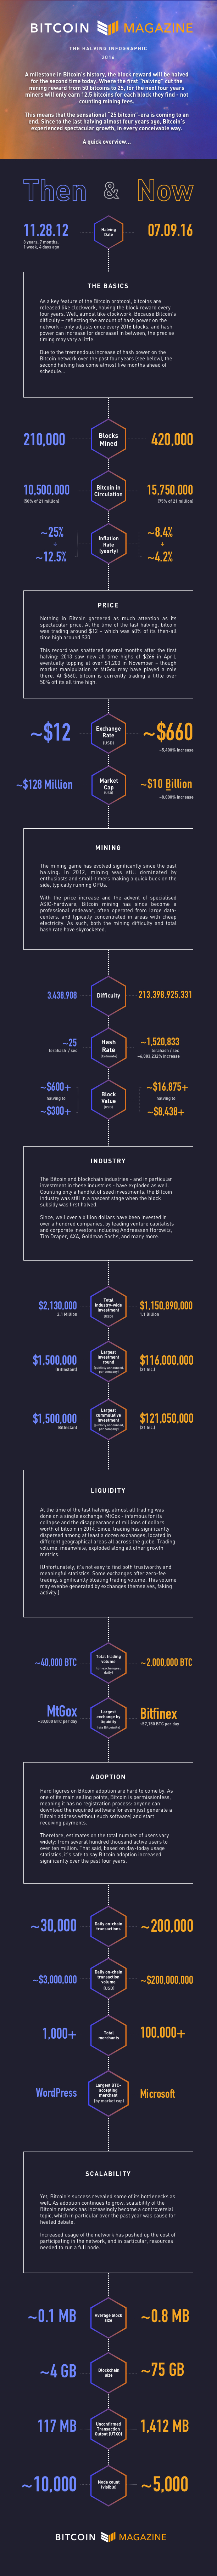 Halving Infographic